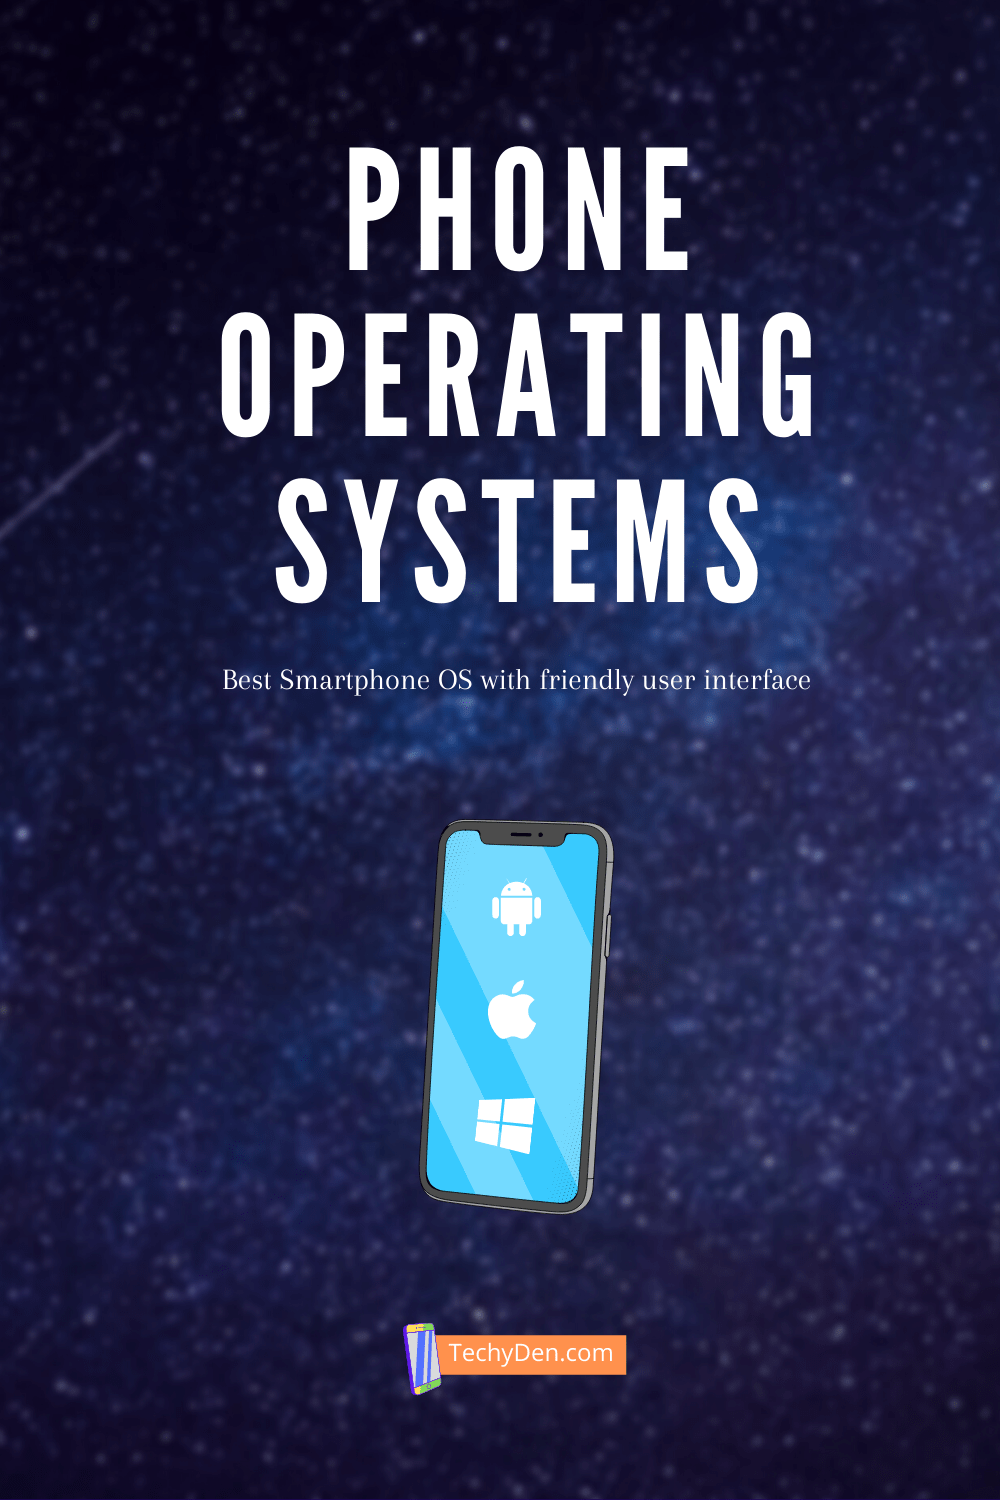 Best smartphone operating systems 2021